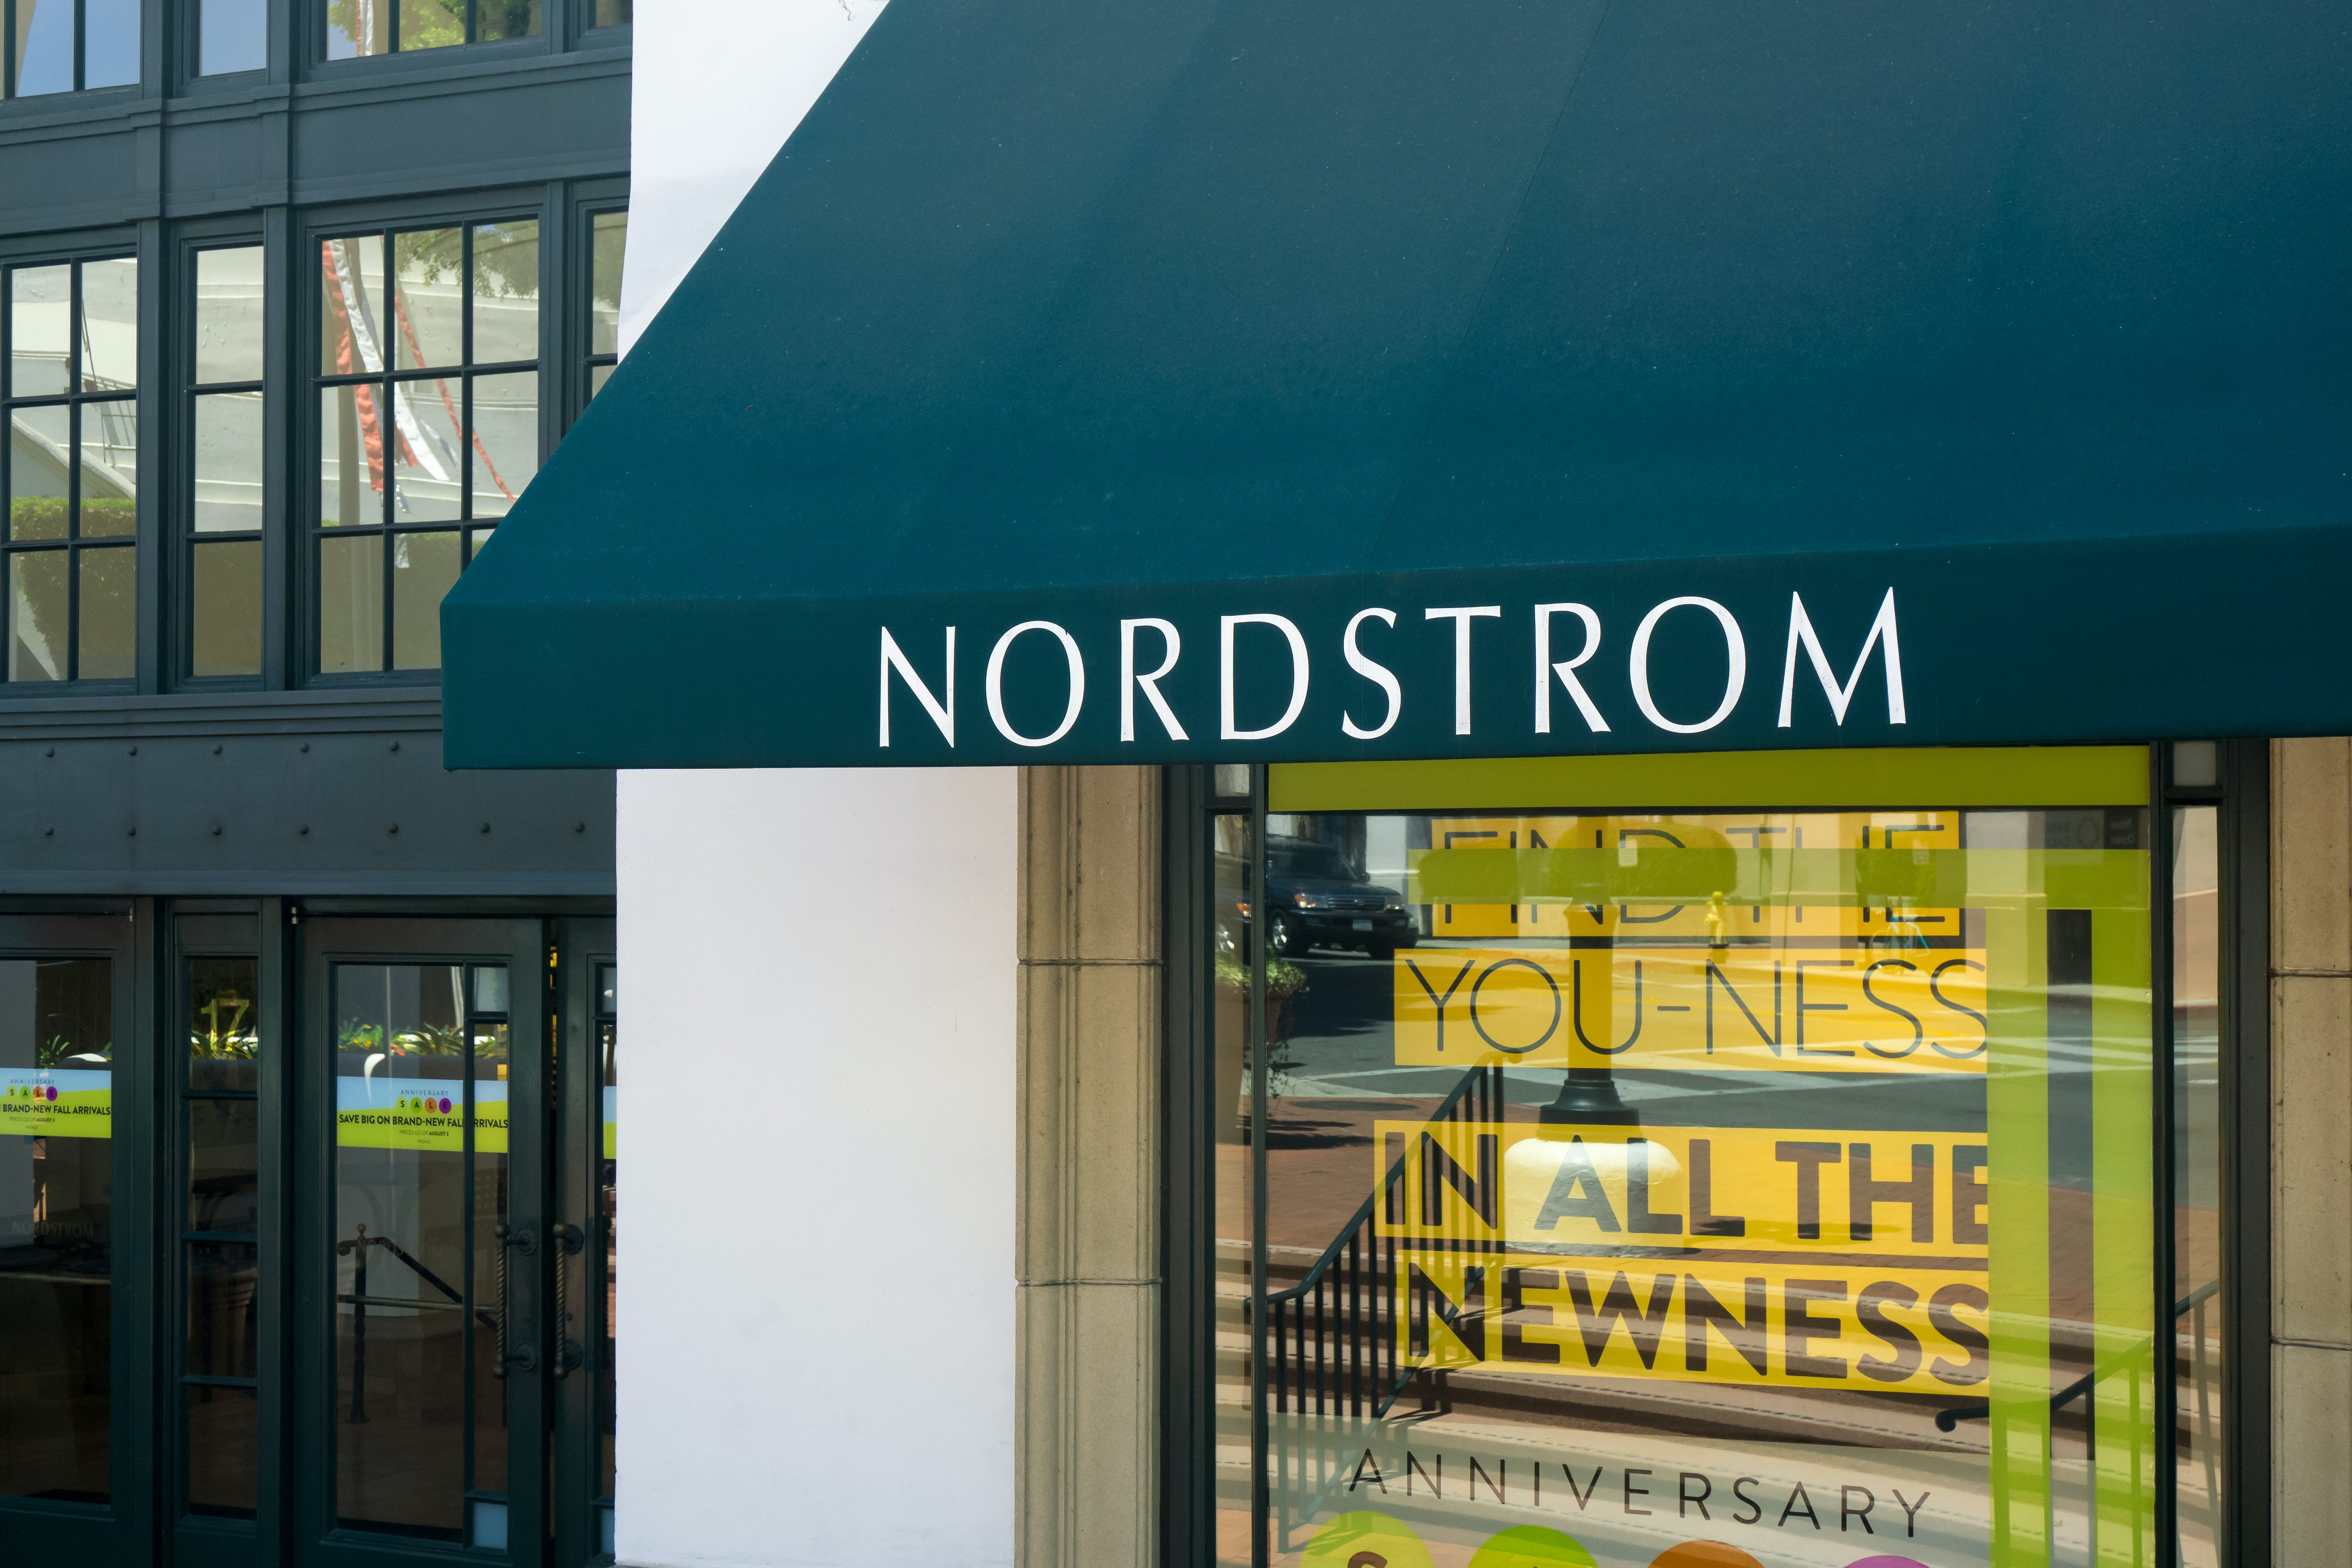 Best Nordstrom Black Friday Deals For 2020 The Krazy Coupon Lady